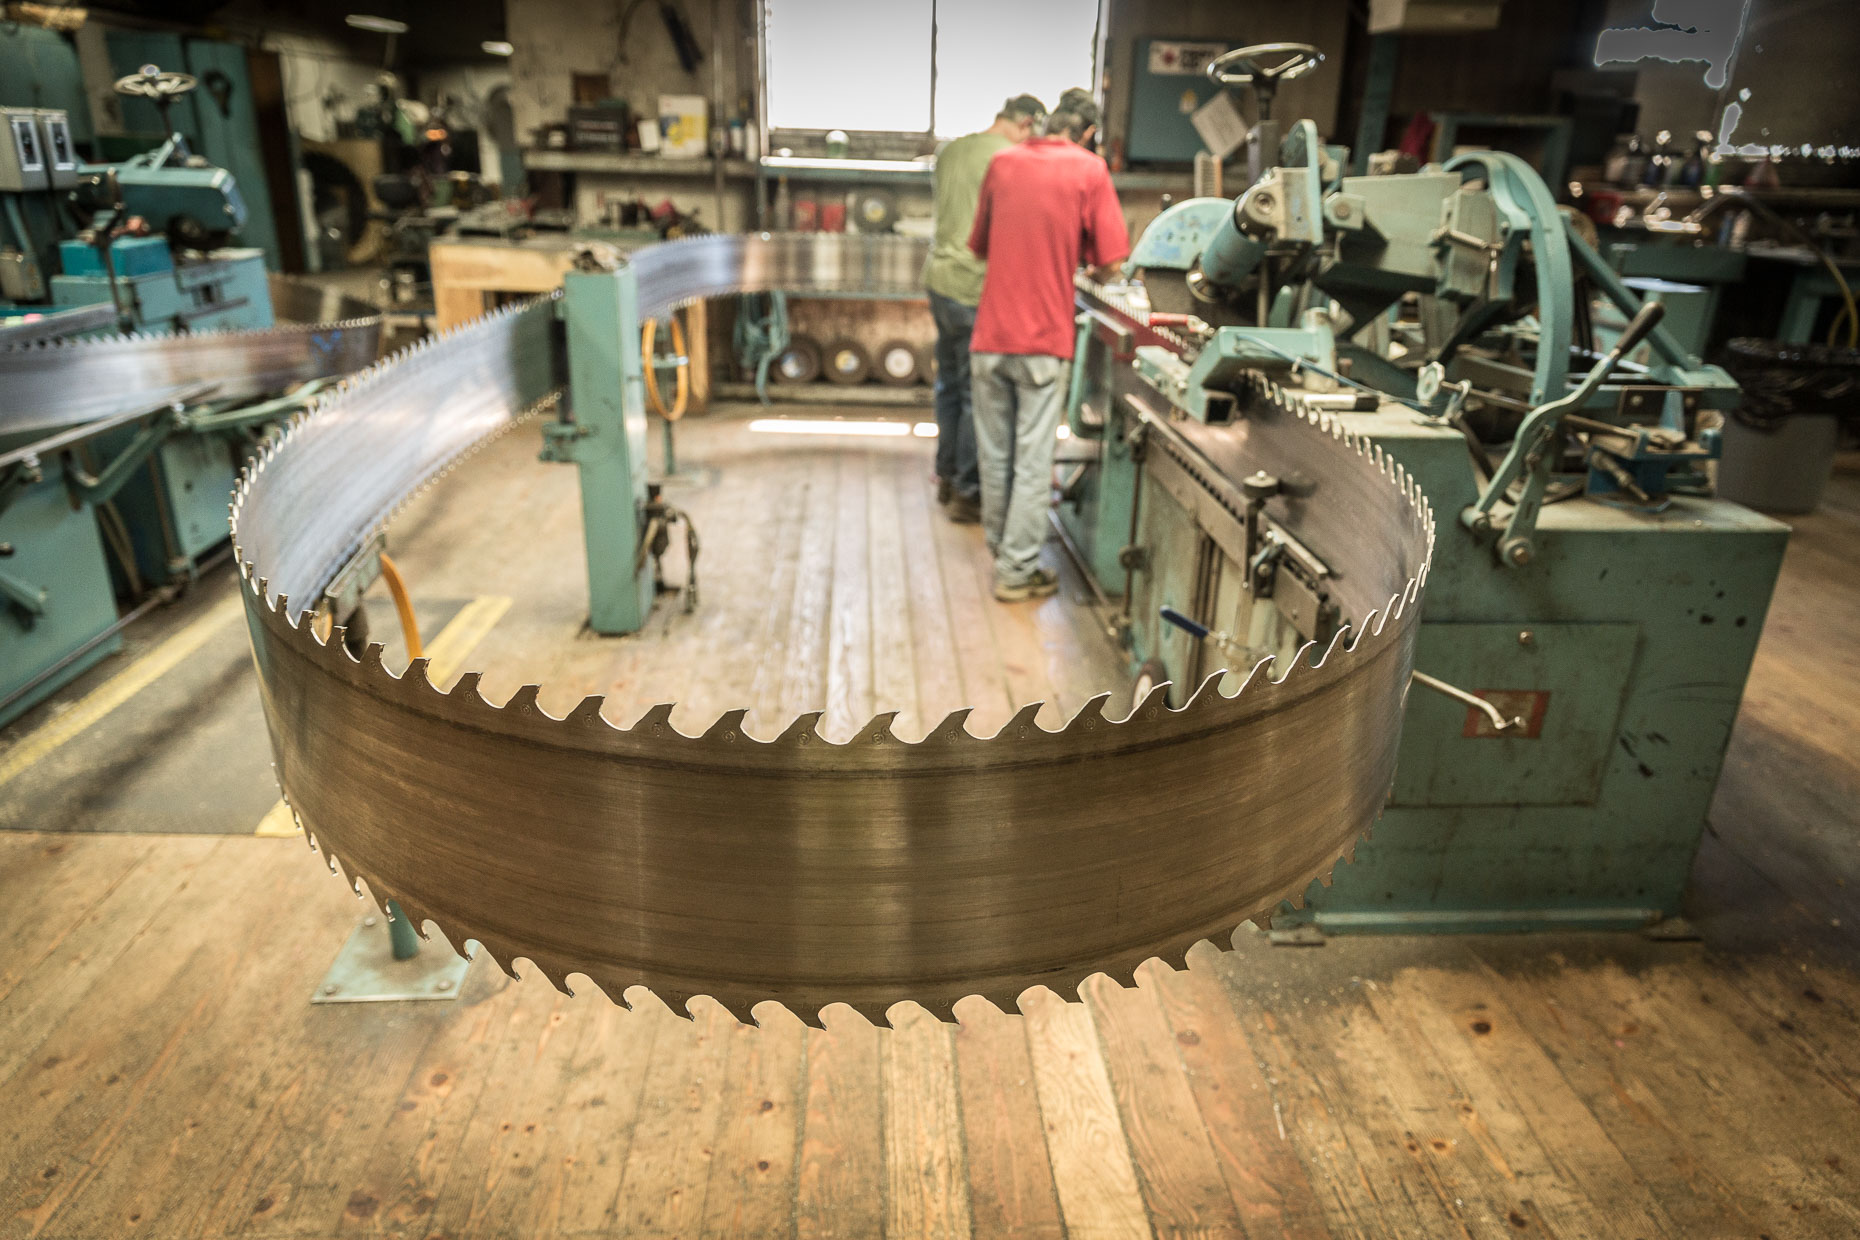 Band saw blade being sharpened in factory, Malheur Lumber Company mill in John Day, Oregon by David Zaitz.